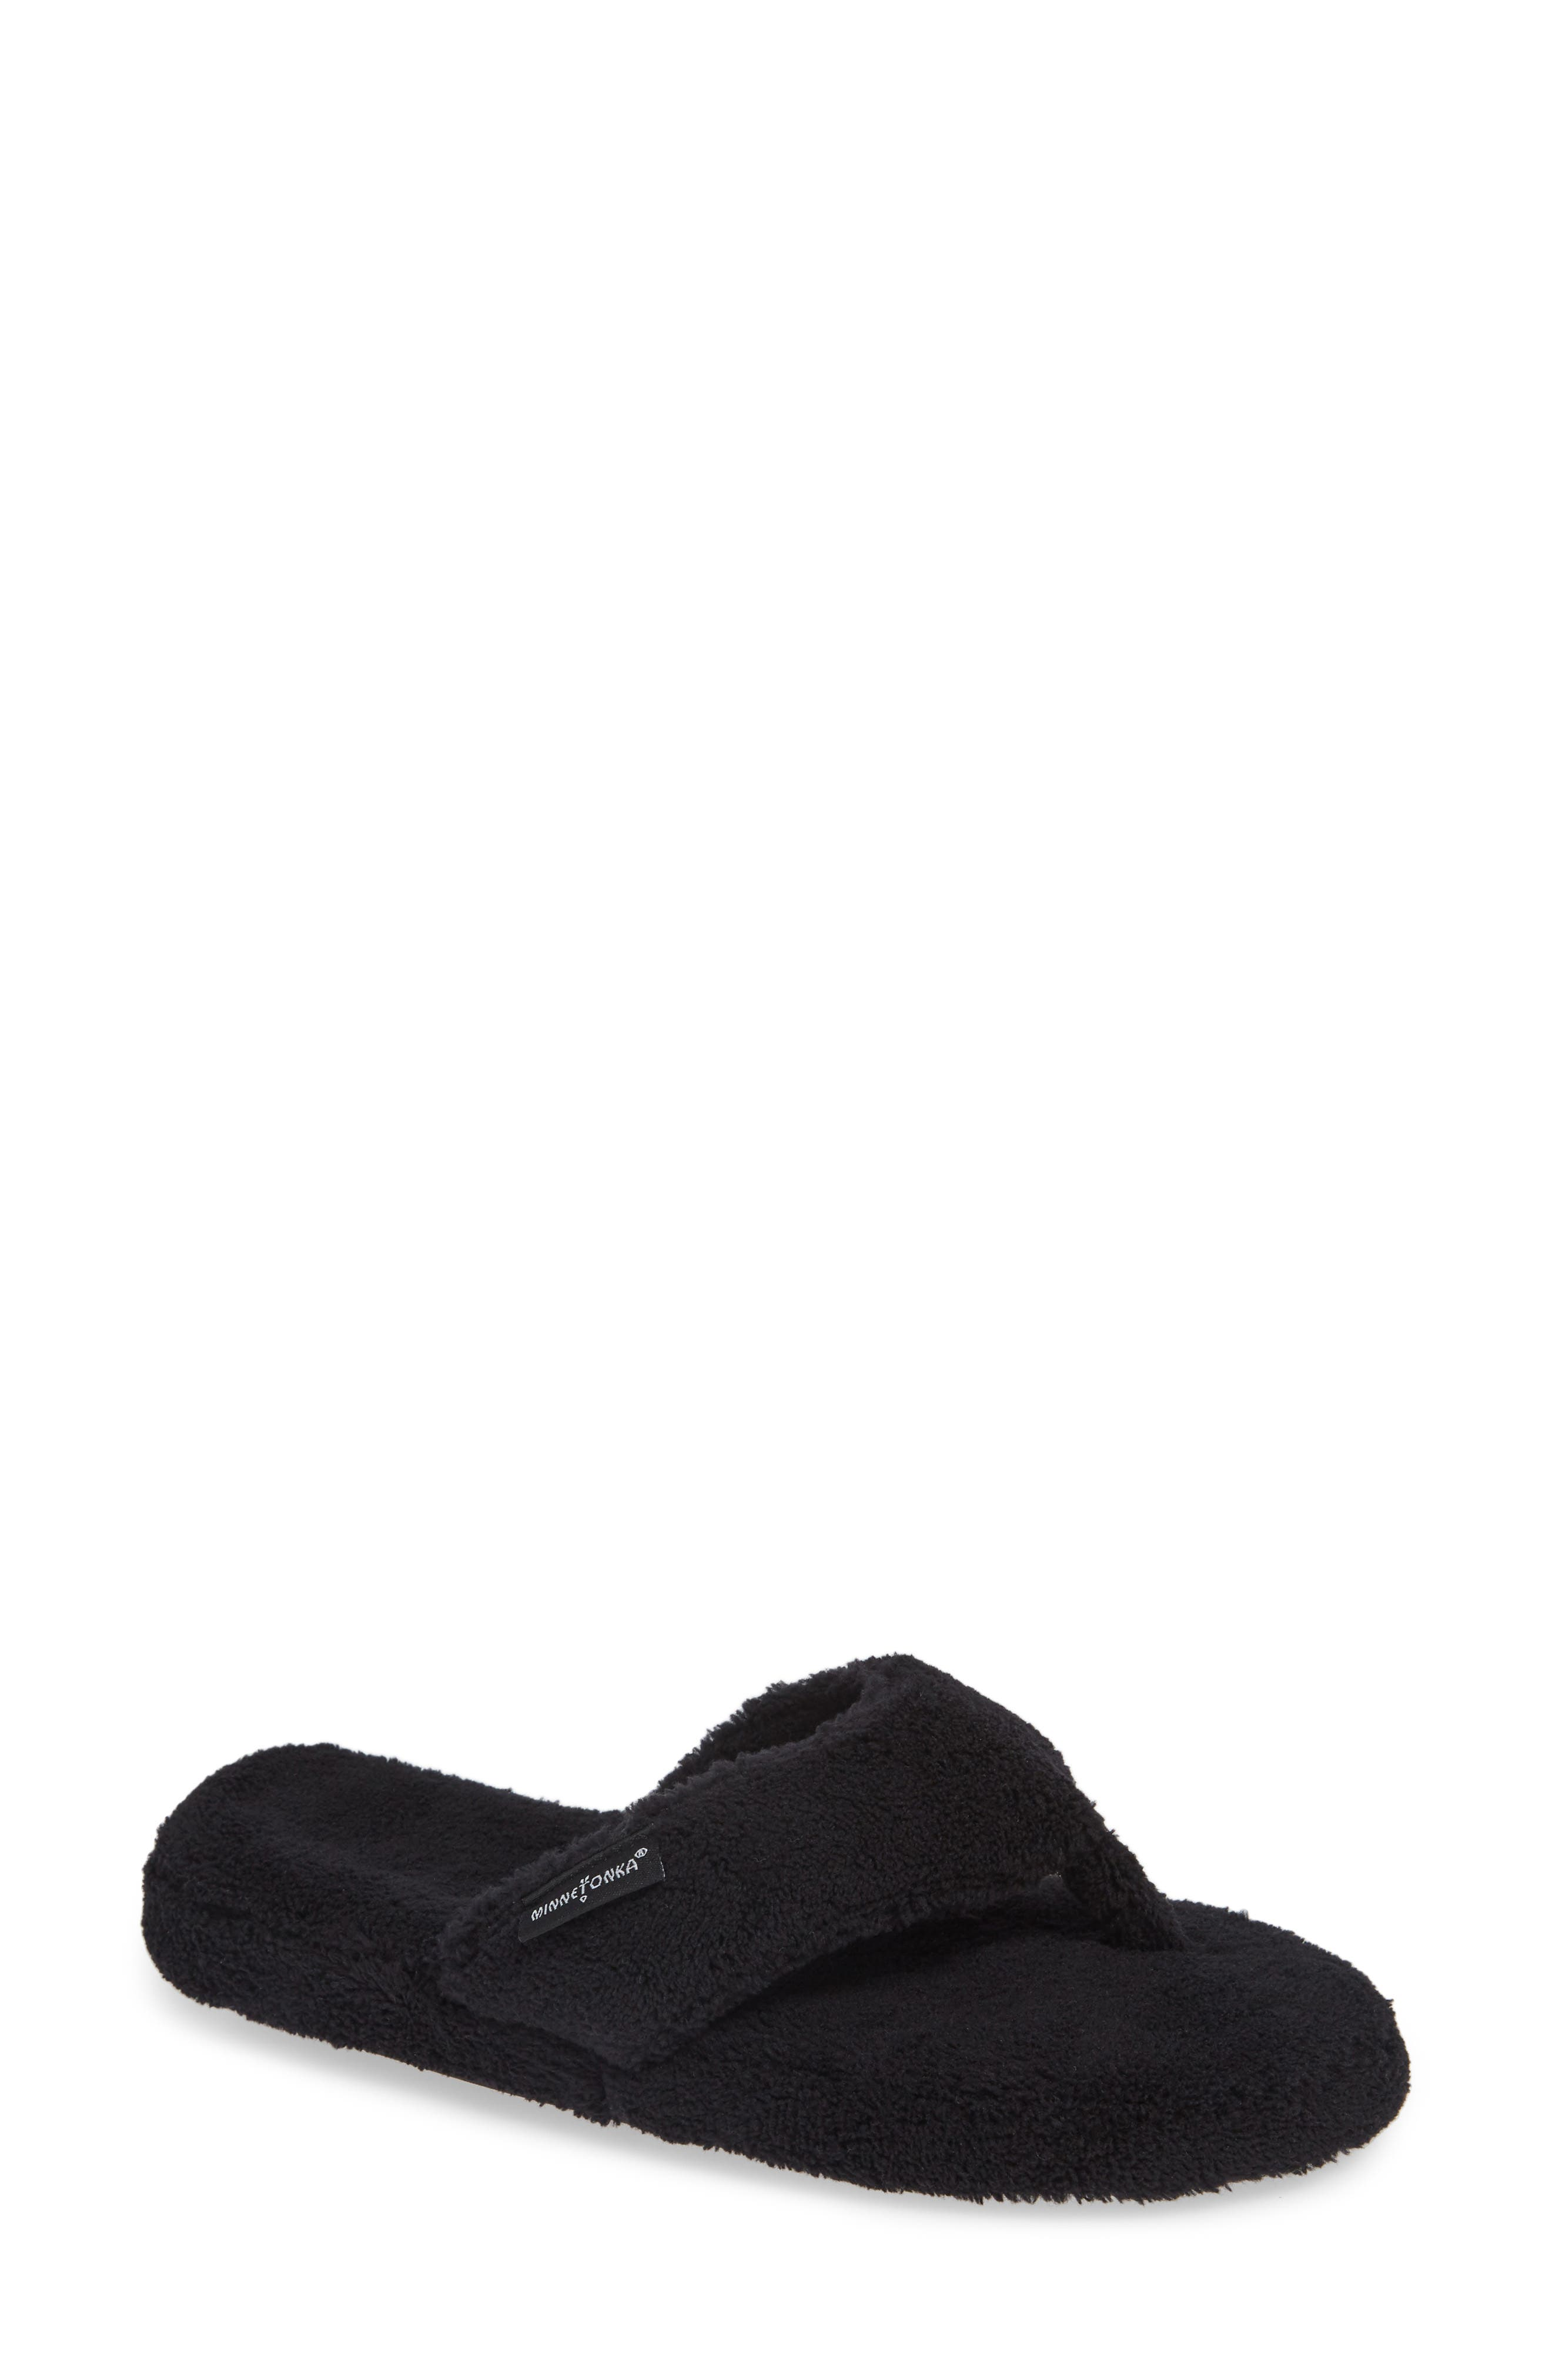 MINNETONKA, Olivia Spa Flip Flop, Main thumbnail 1, color, BLACK FABRIC